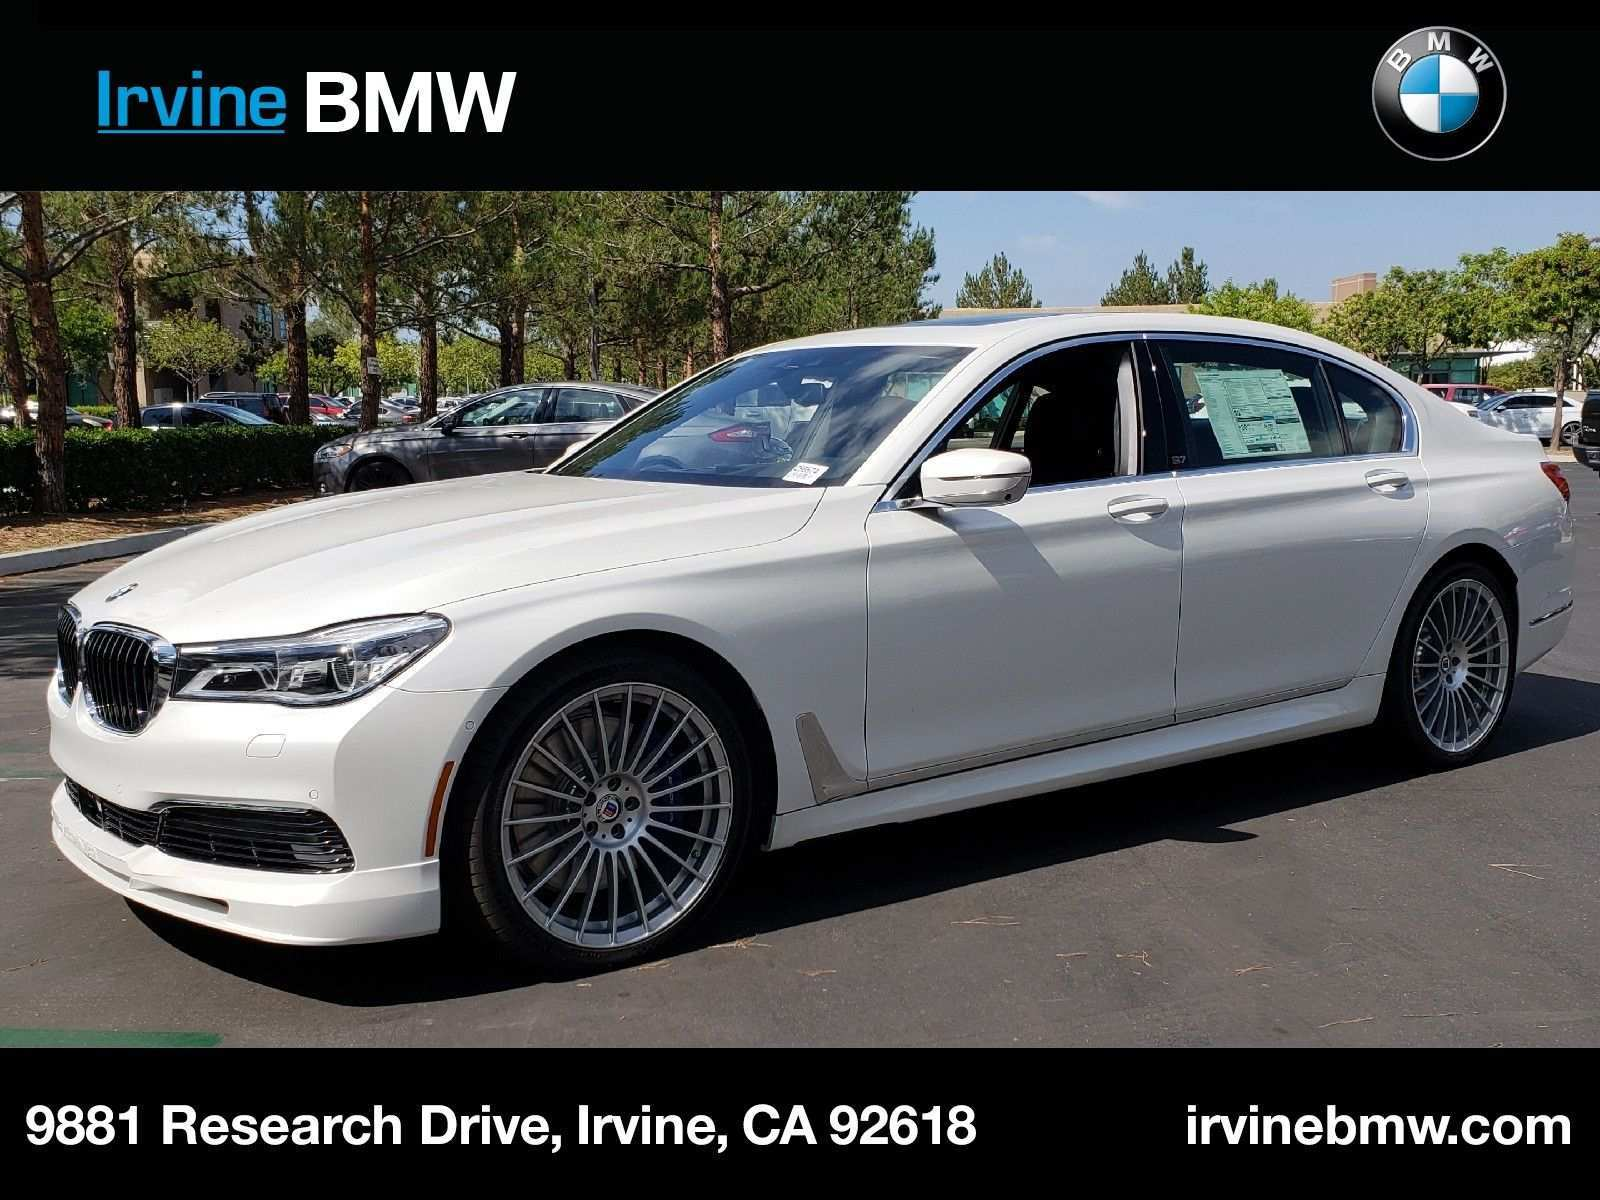 50 Concept of 2019 Bmw Alpina B7 For Sale First Drive with 2019 Bmw Alpina B7 For Sale